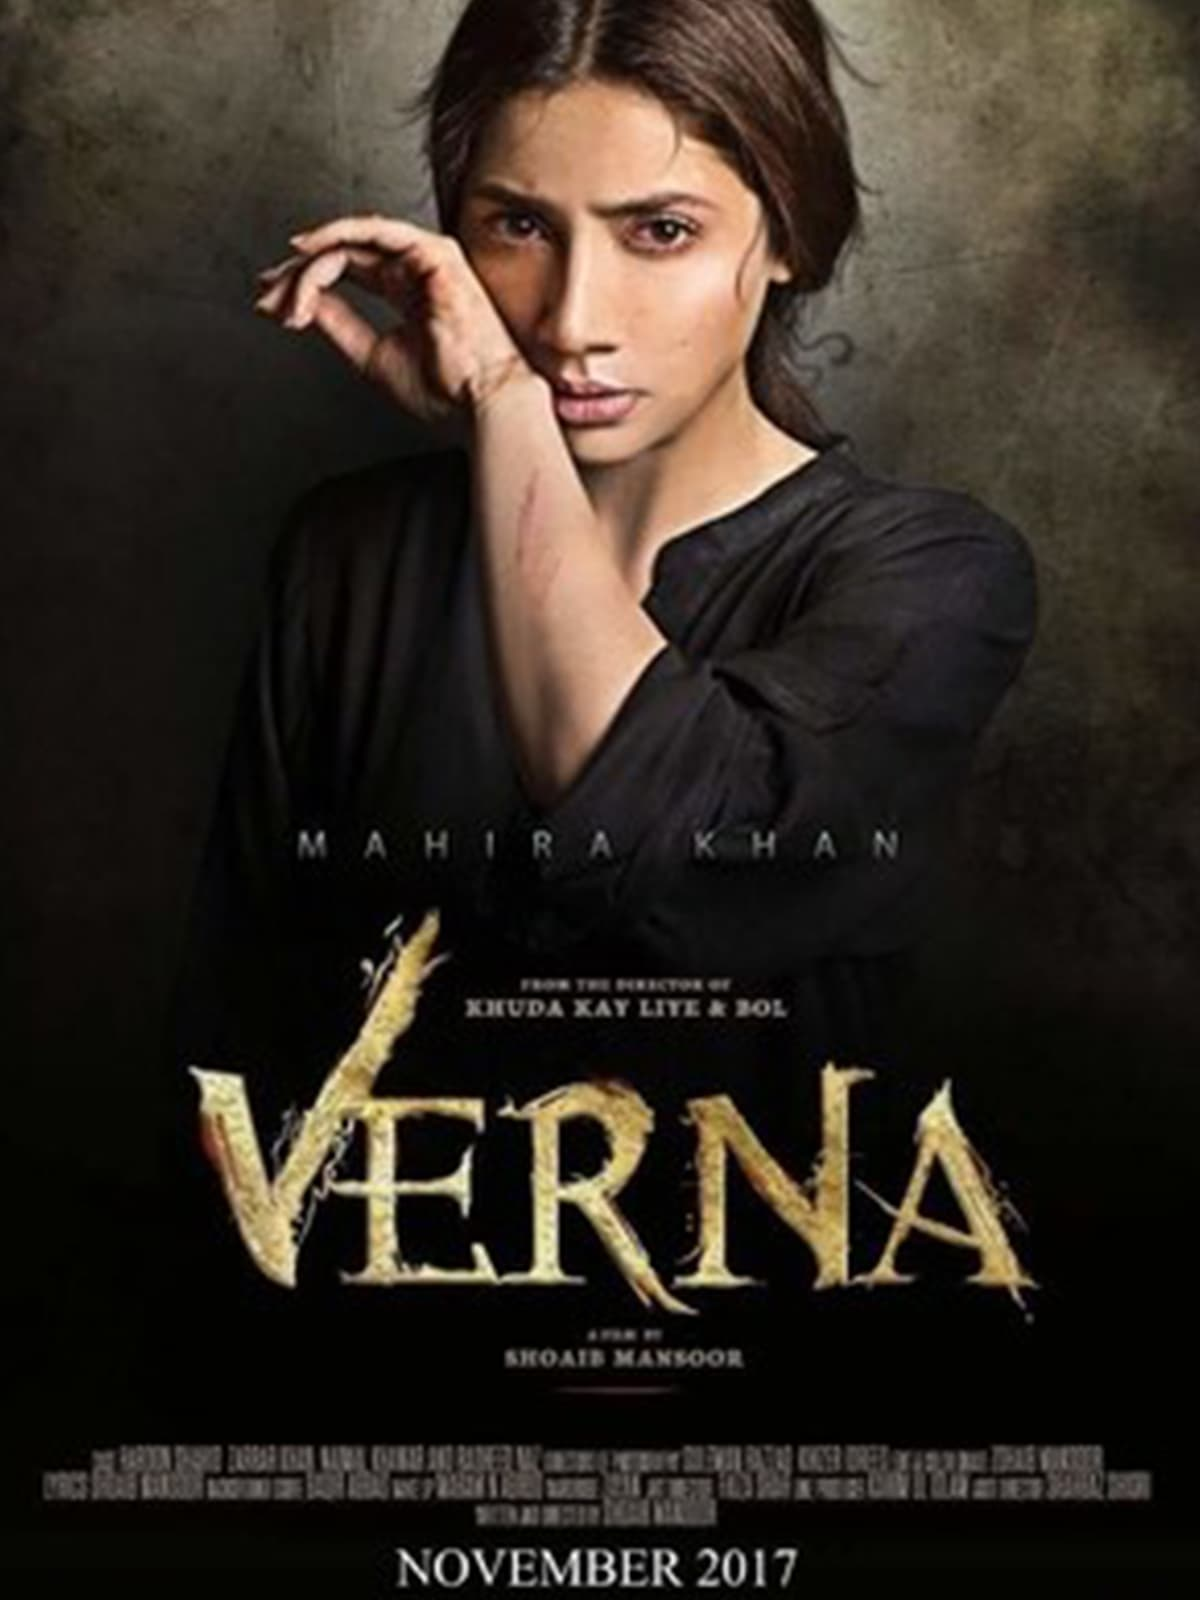 The official film poster for *Verna*. Credit: Wikimedia